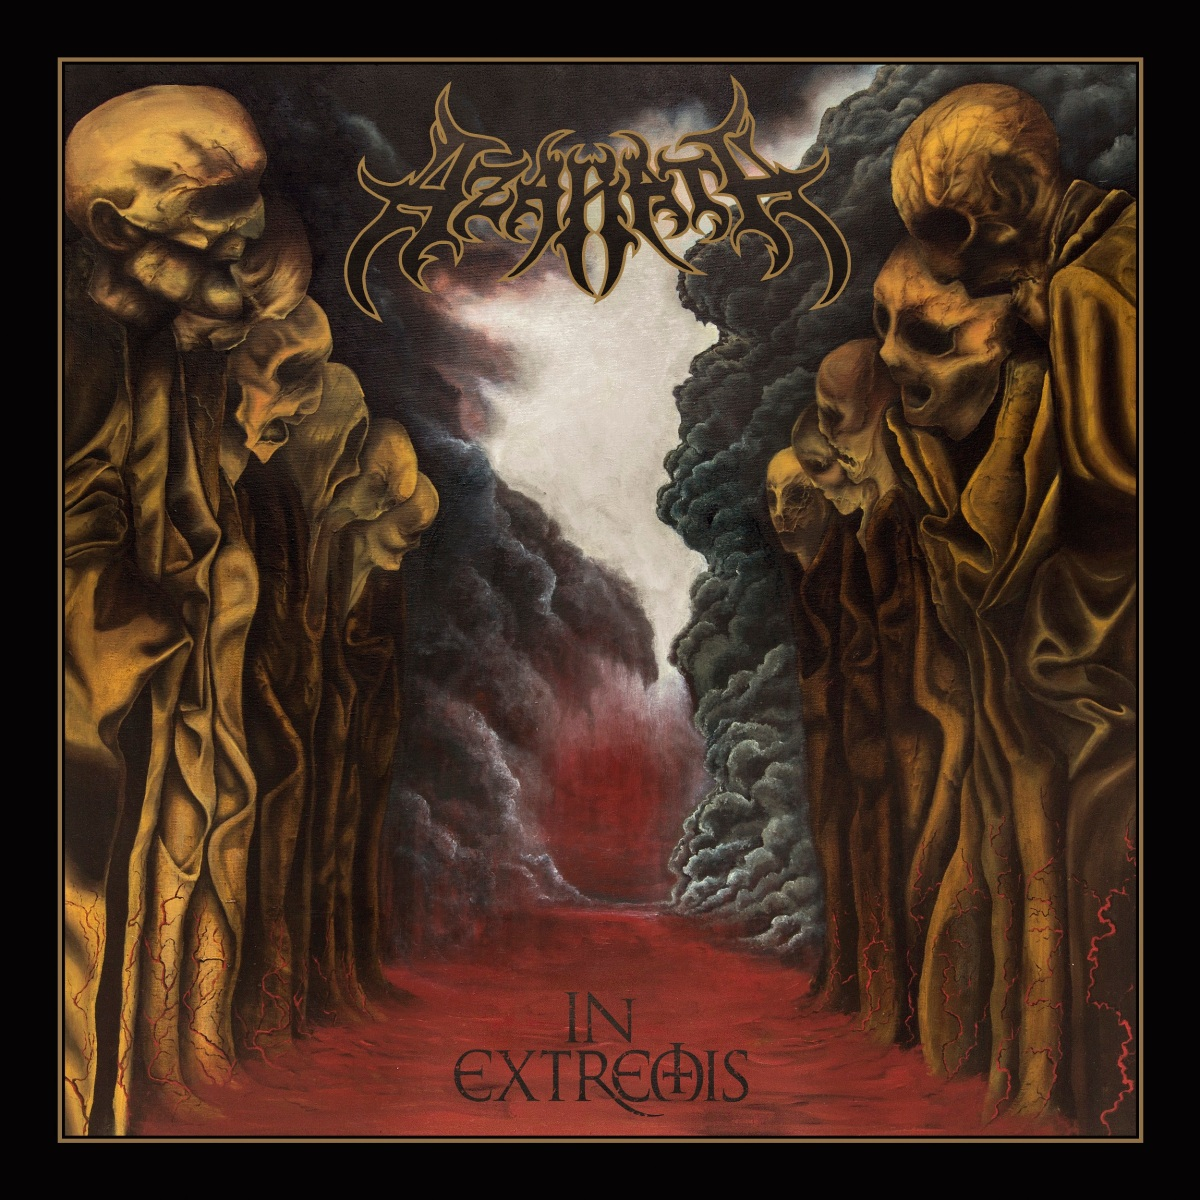 REVIEW: AZARATH - IN EXTREMIS